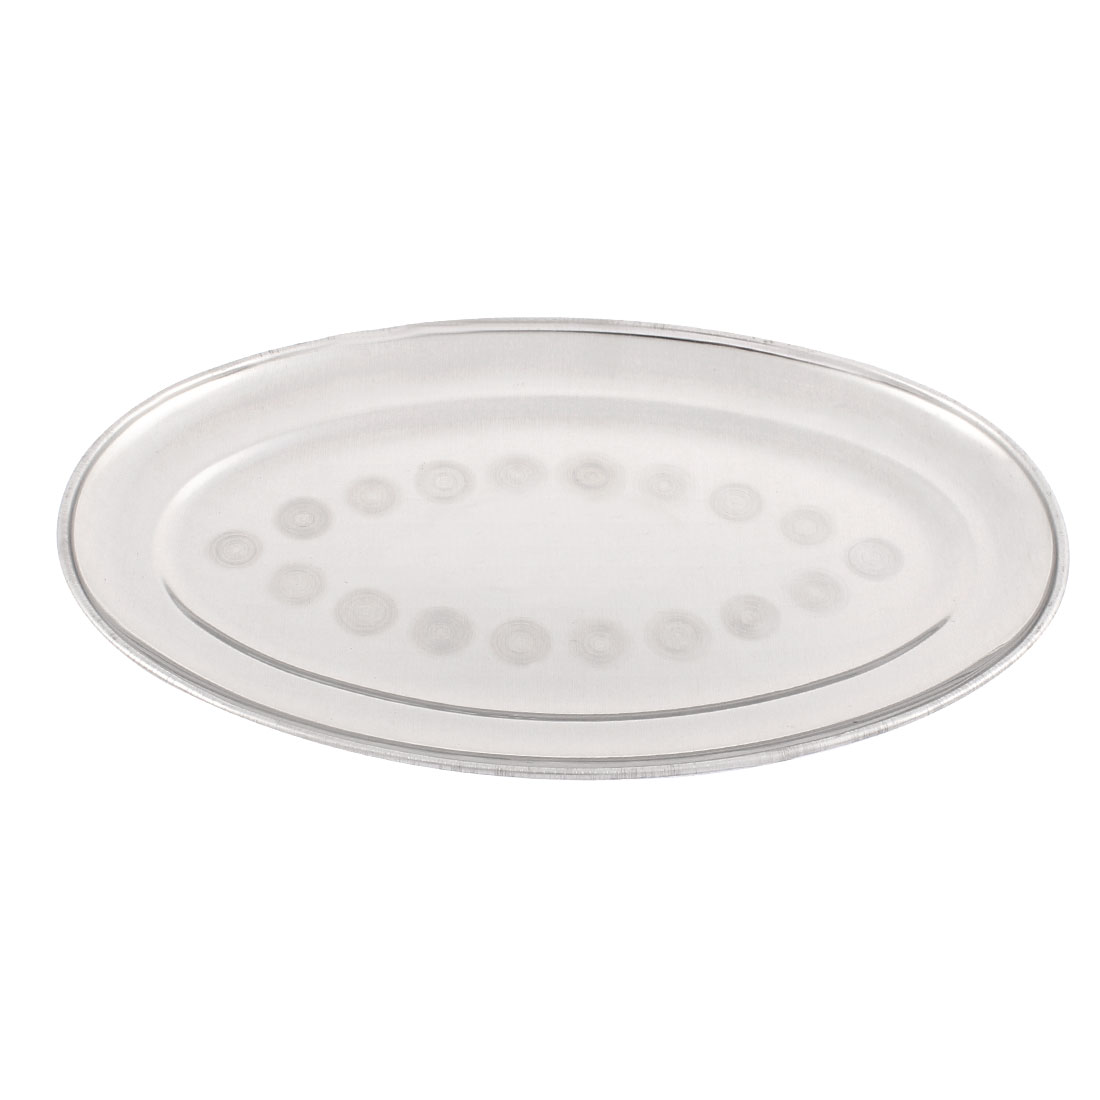 "Oval Shaped Food Container Serving Dish Plate 10"" Length"